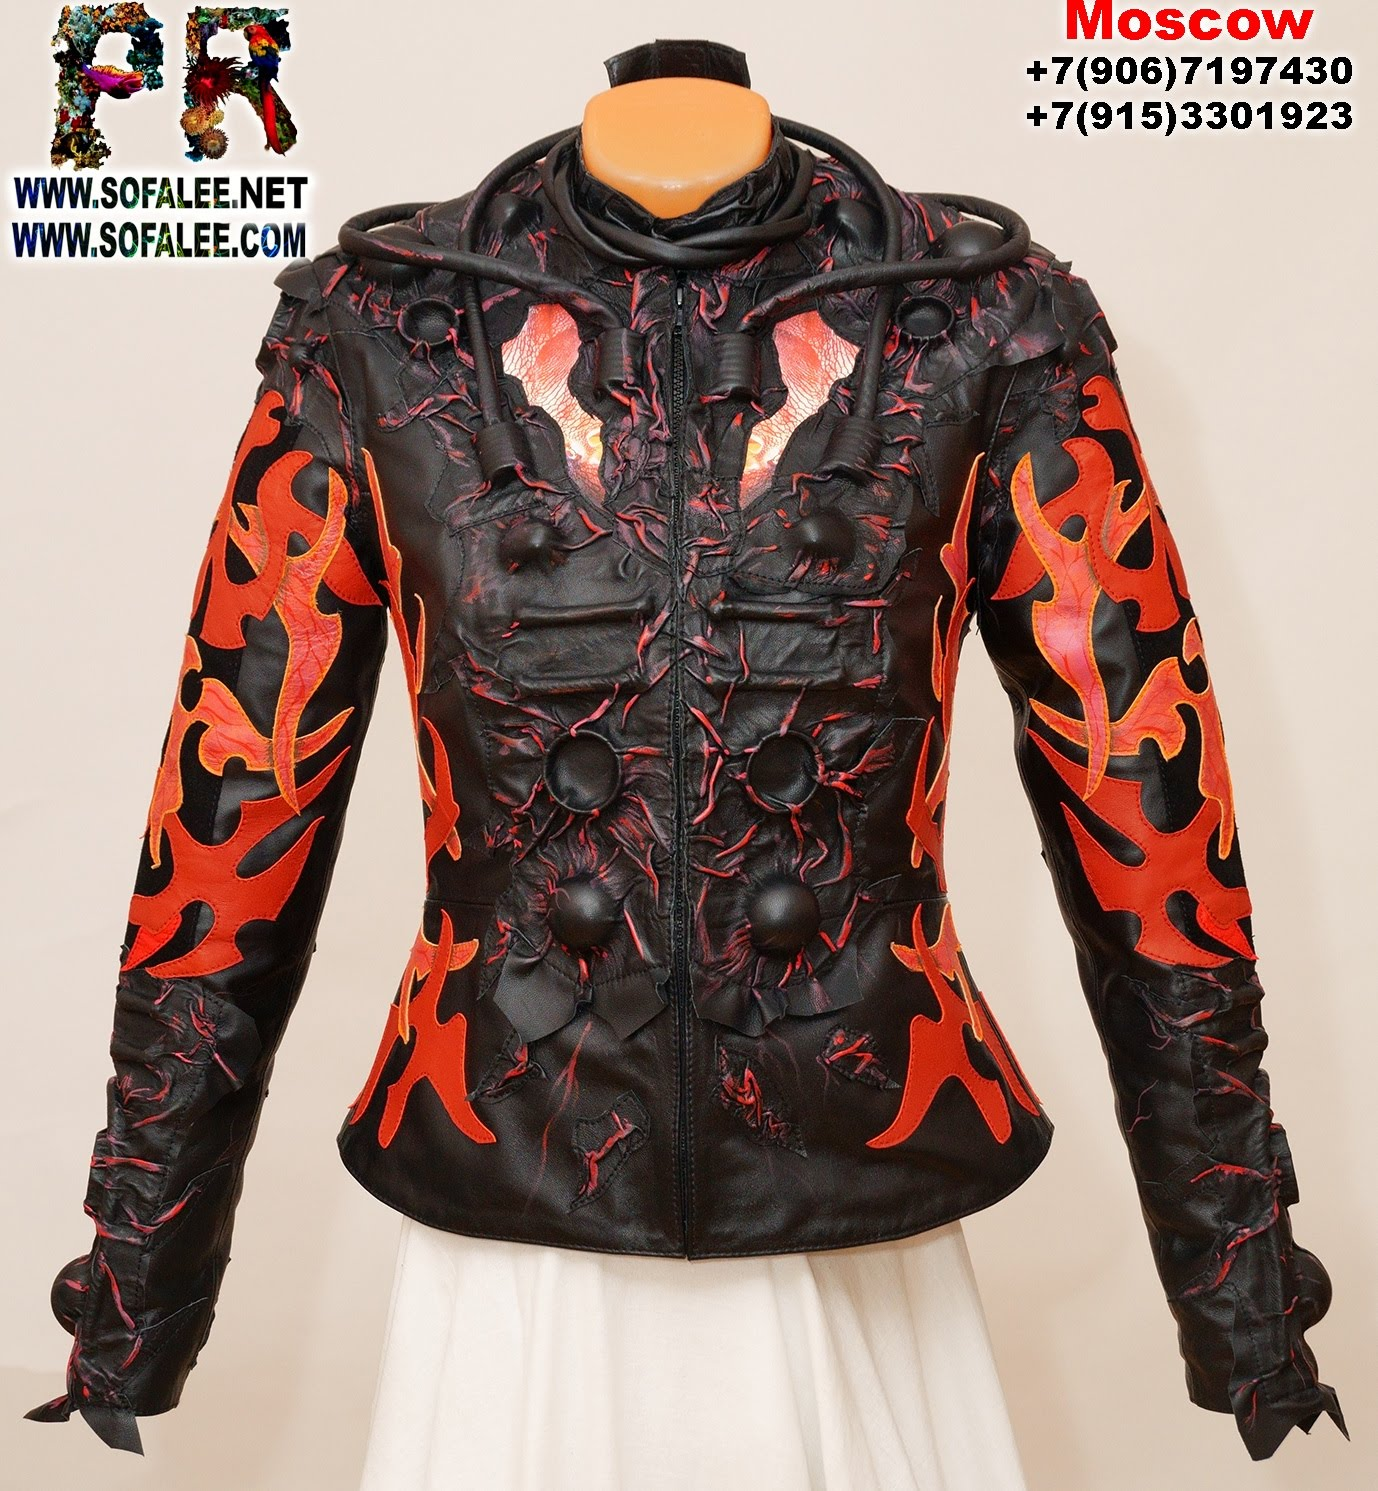 Chic women's genuine leather jacket black red 011